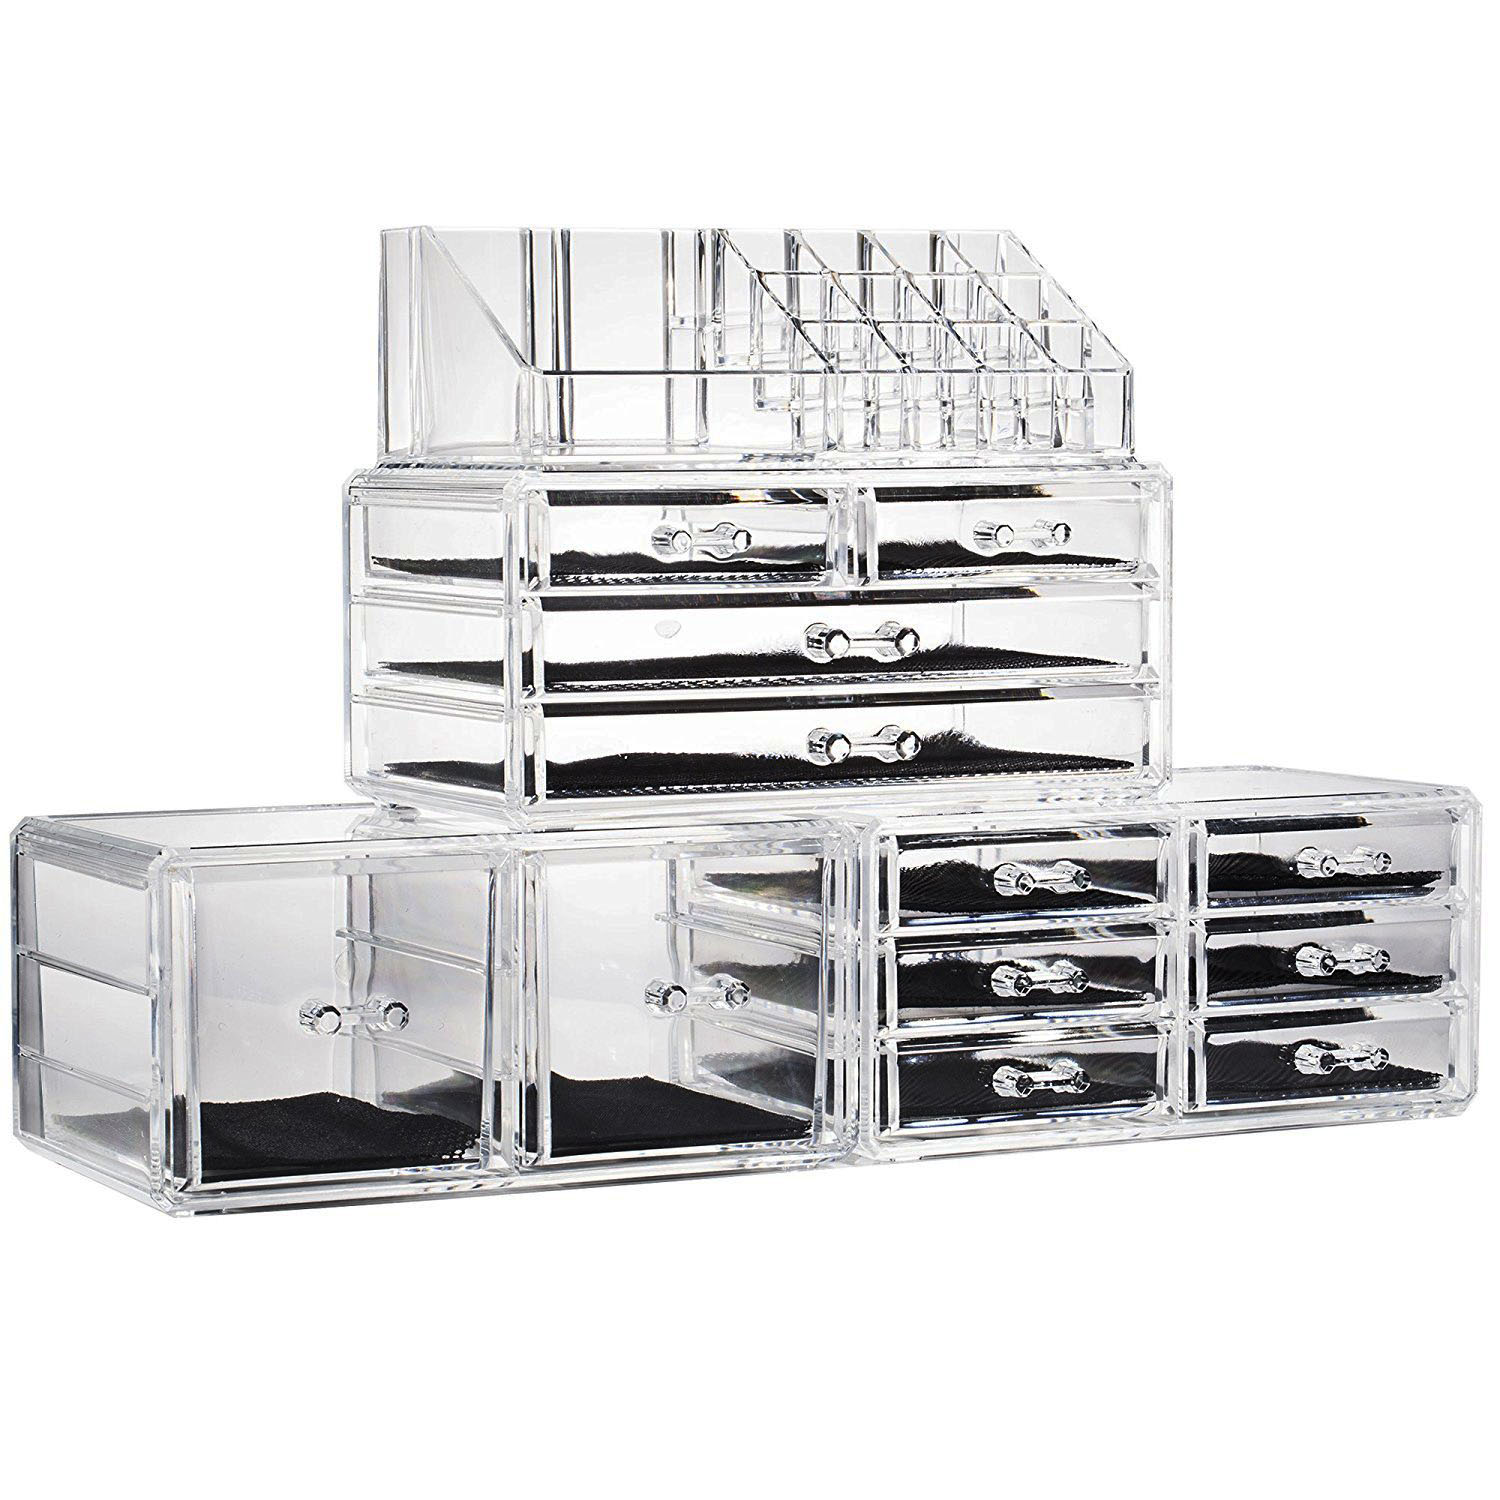 12 Containers Drawers Makeup Organizer Jewelry Storage Acrylic Case